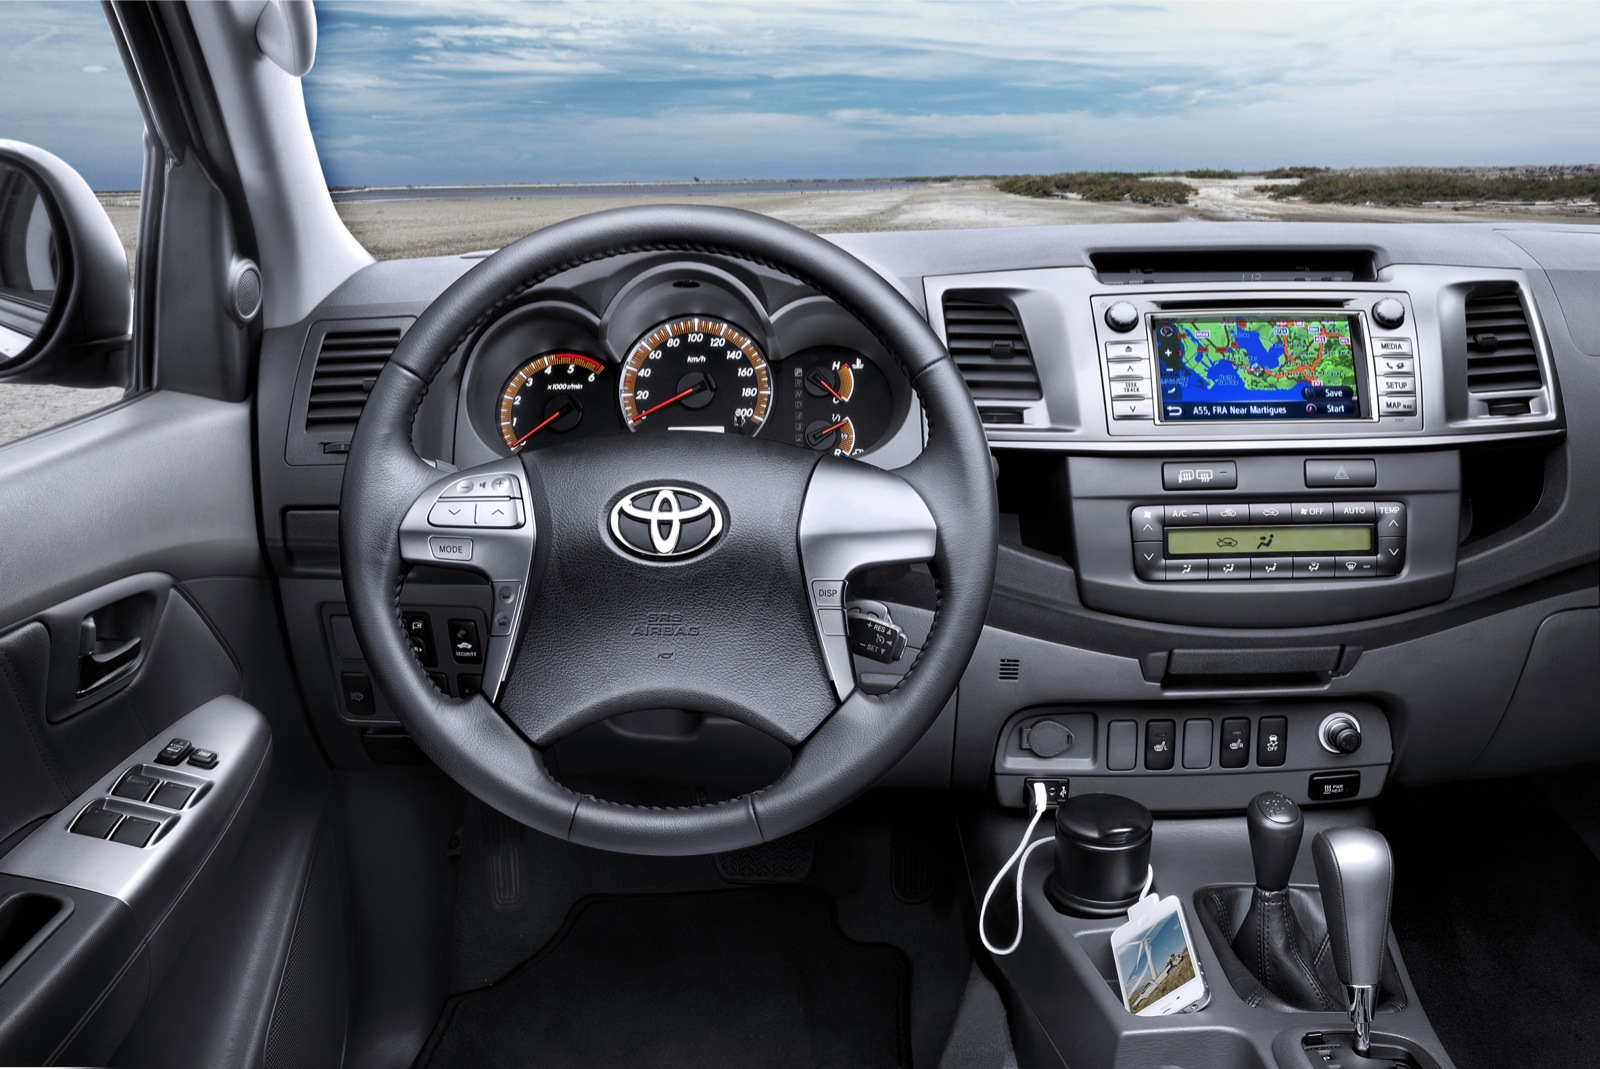 TOYOTA Hilux Double Cab Photo Gallery  6 11